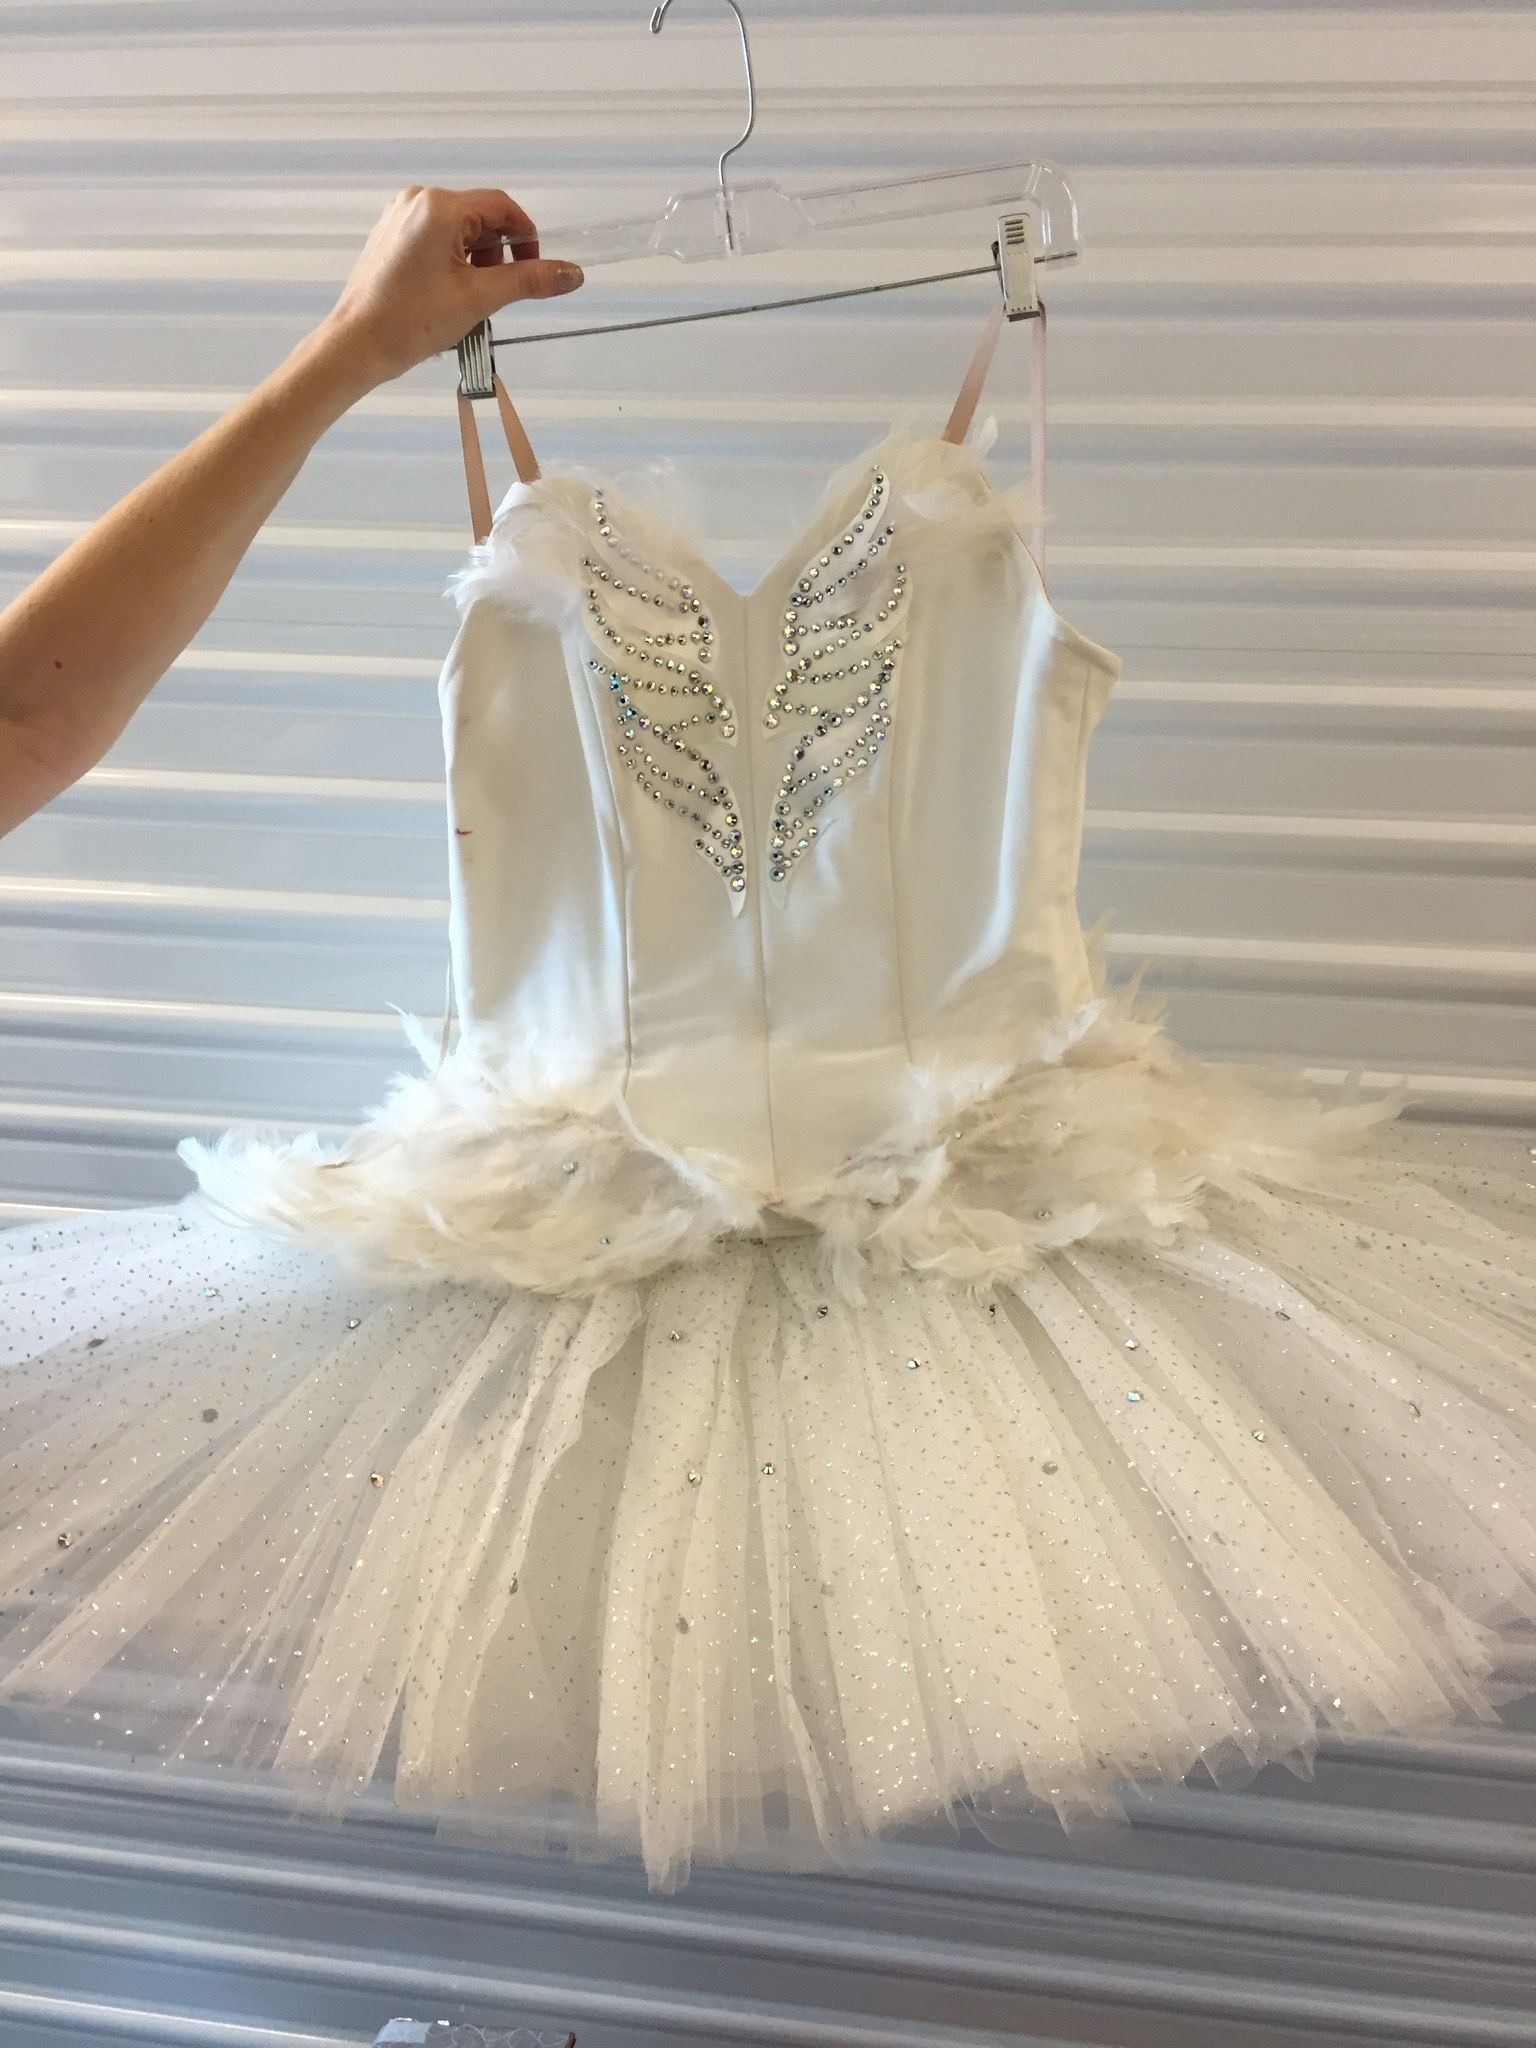 44510b765 7 white feather swan lake tutus with attached rhinestone bodice (plus one  tiny kids one) - various sizes, mostly for small adults #LAUnboundWhite #  ...